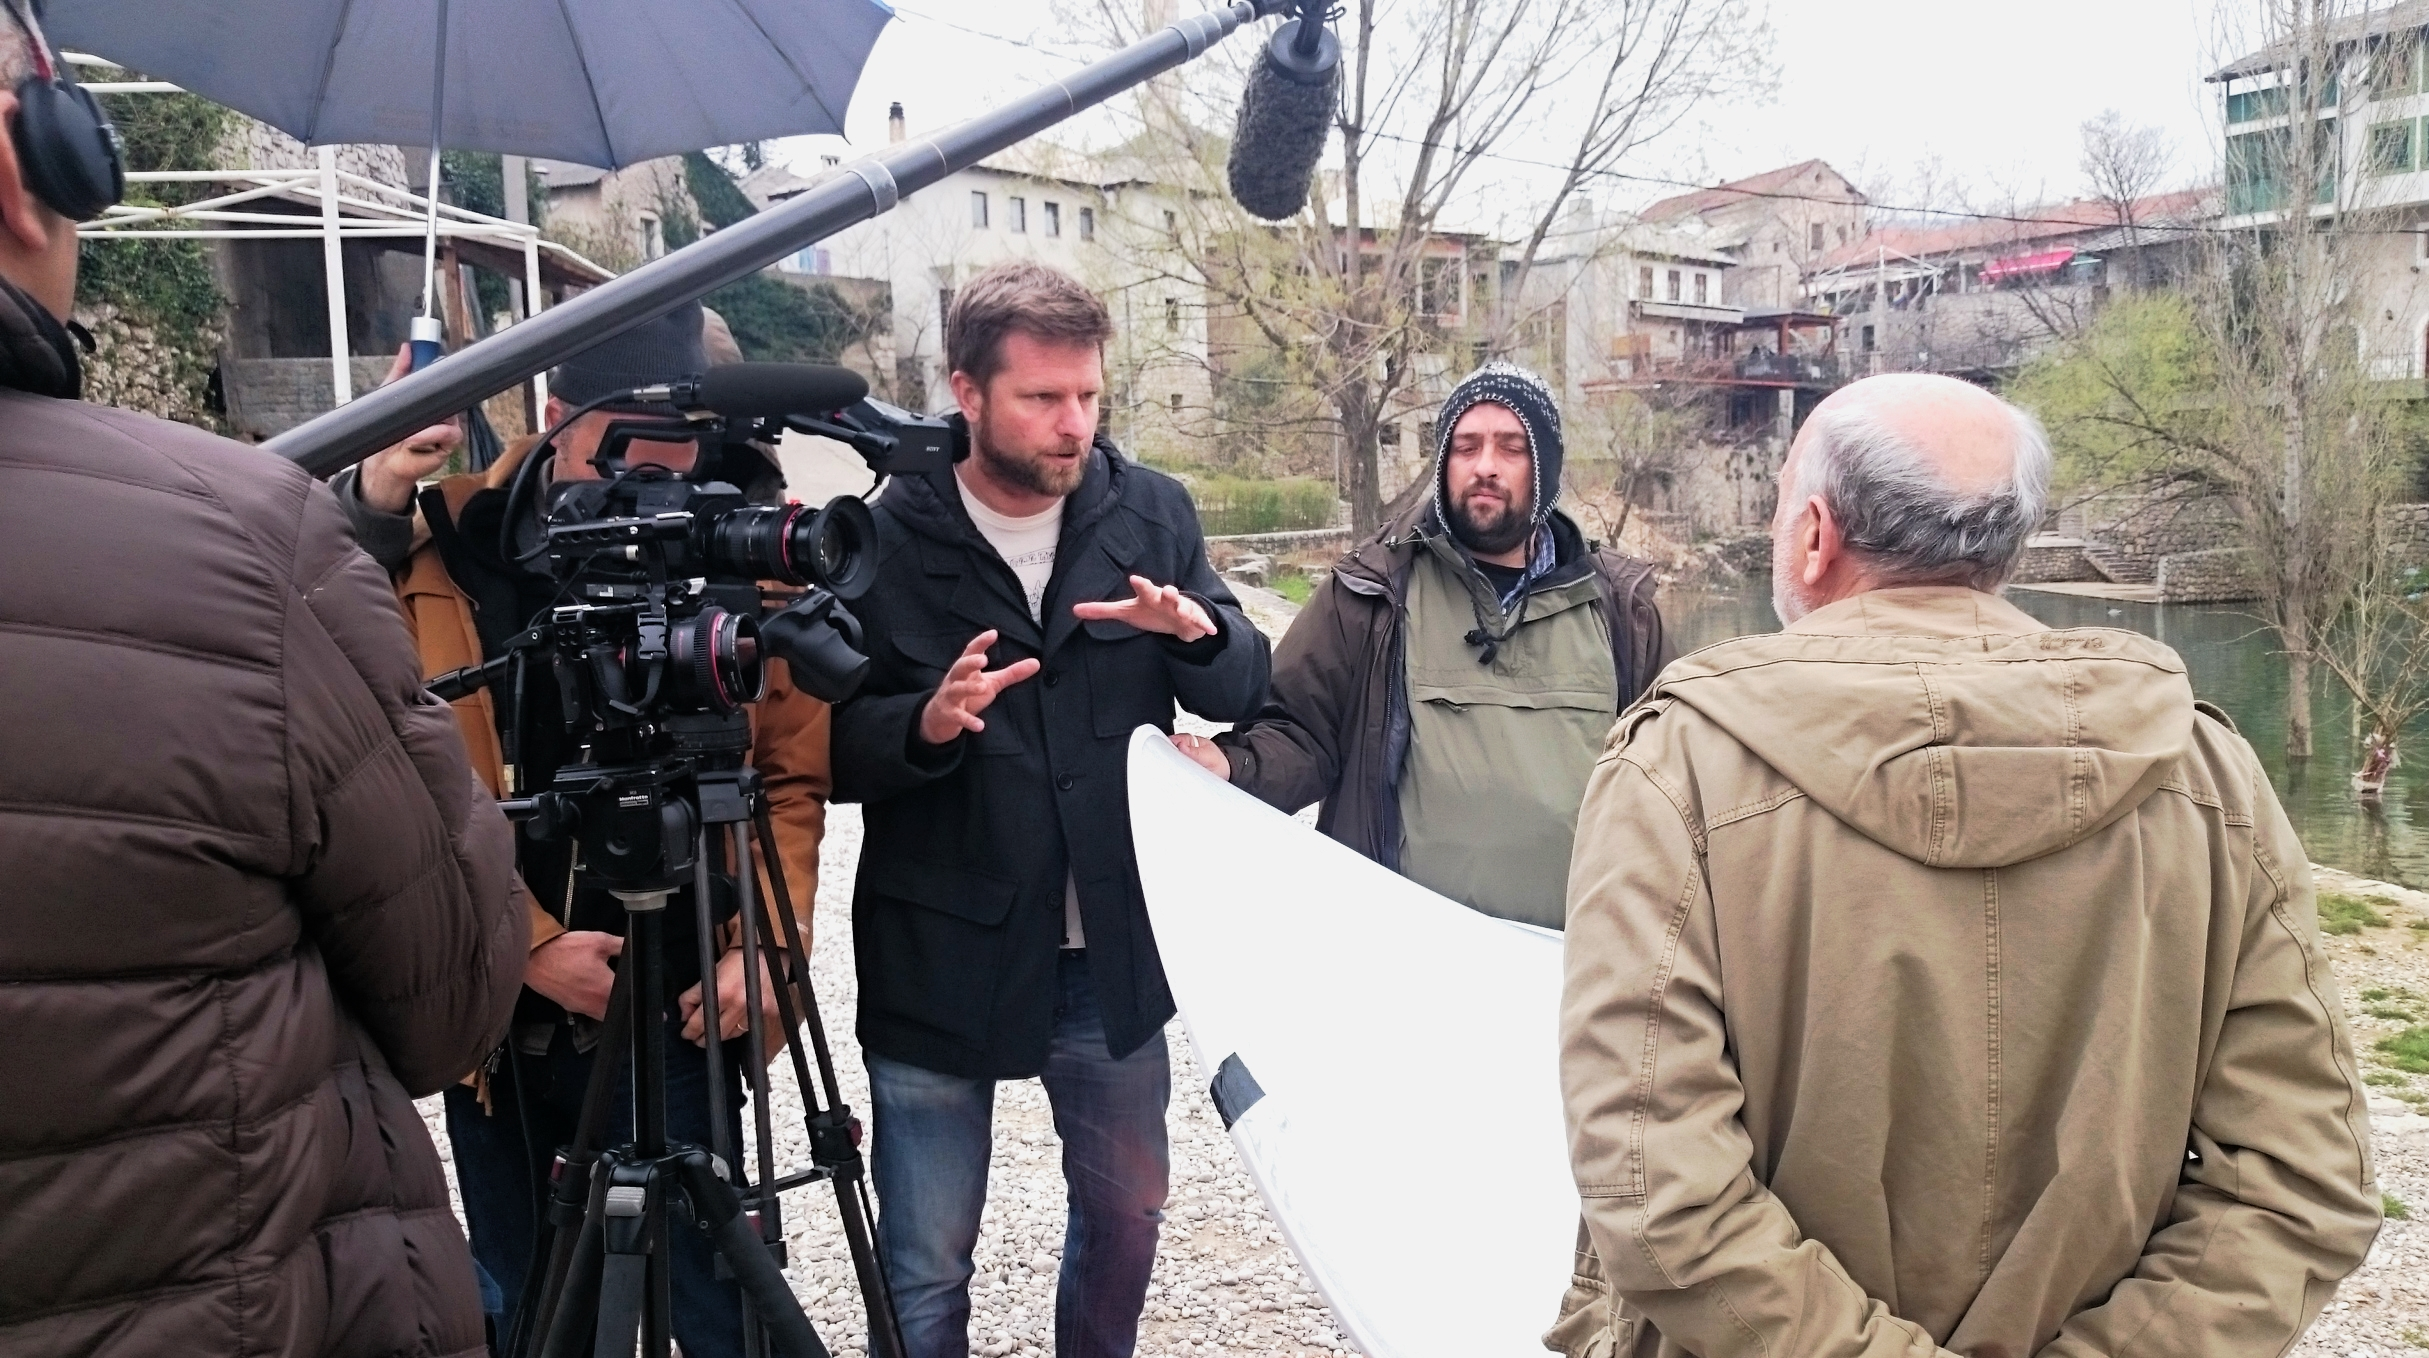 Tim directing an interview for 'The Destruction of Memory' in Mostar, Bosnia. Image: Faris Dobraca.